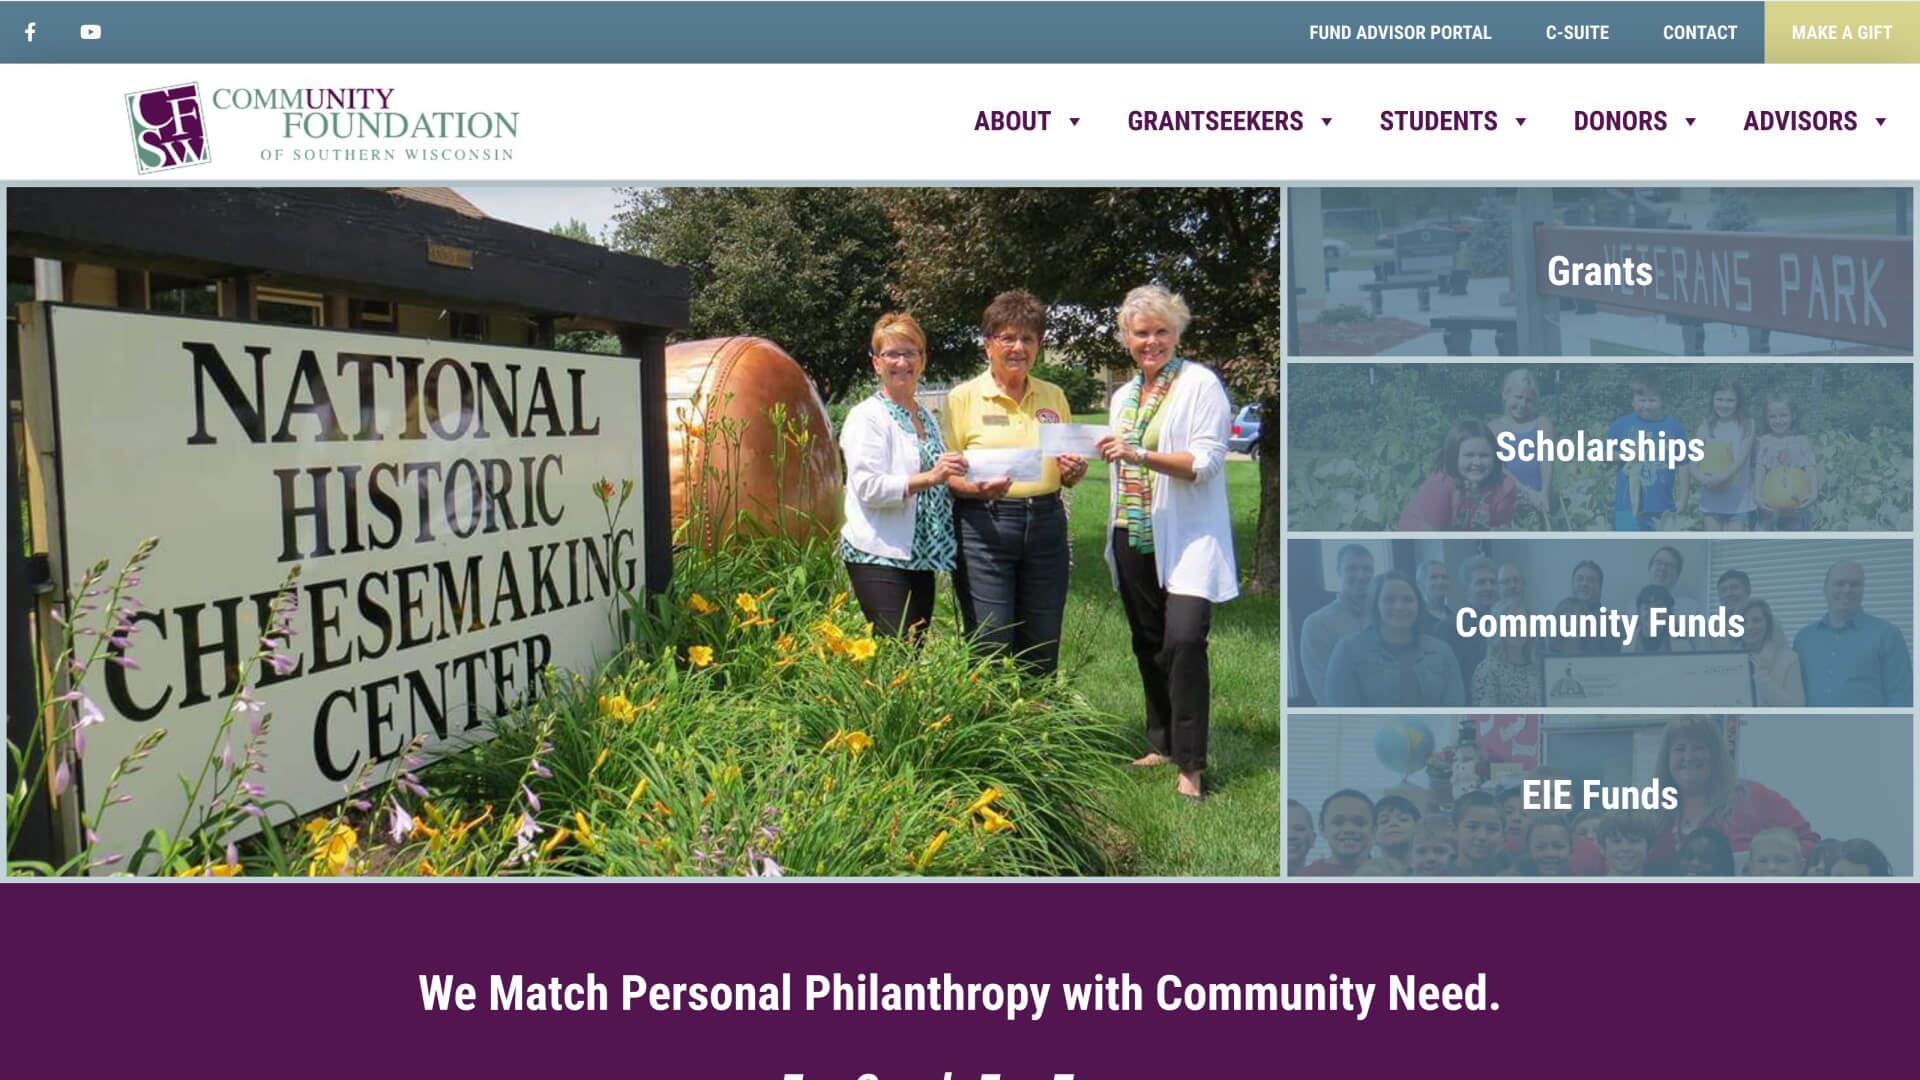 Screenshot of Community Foundation of Southern Wisconsin homepage on May 5, 2020